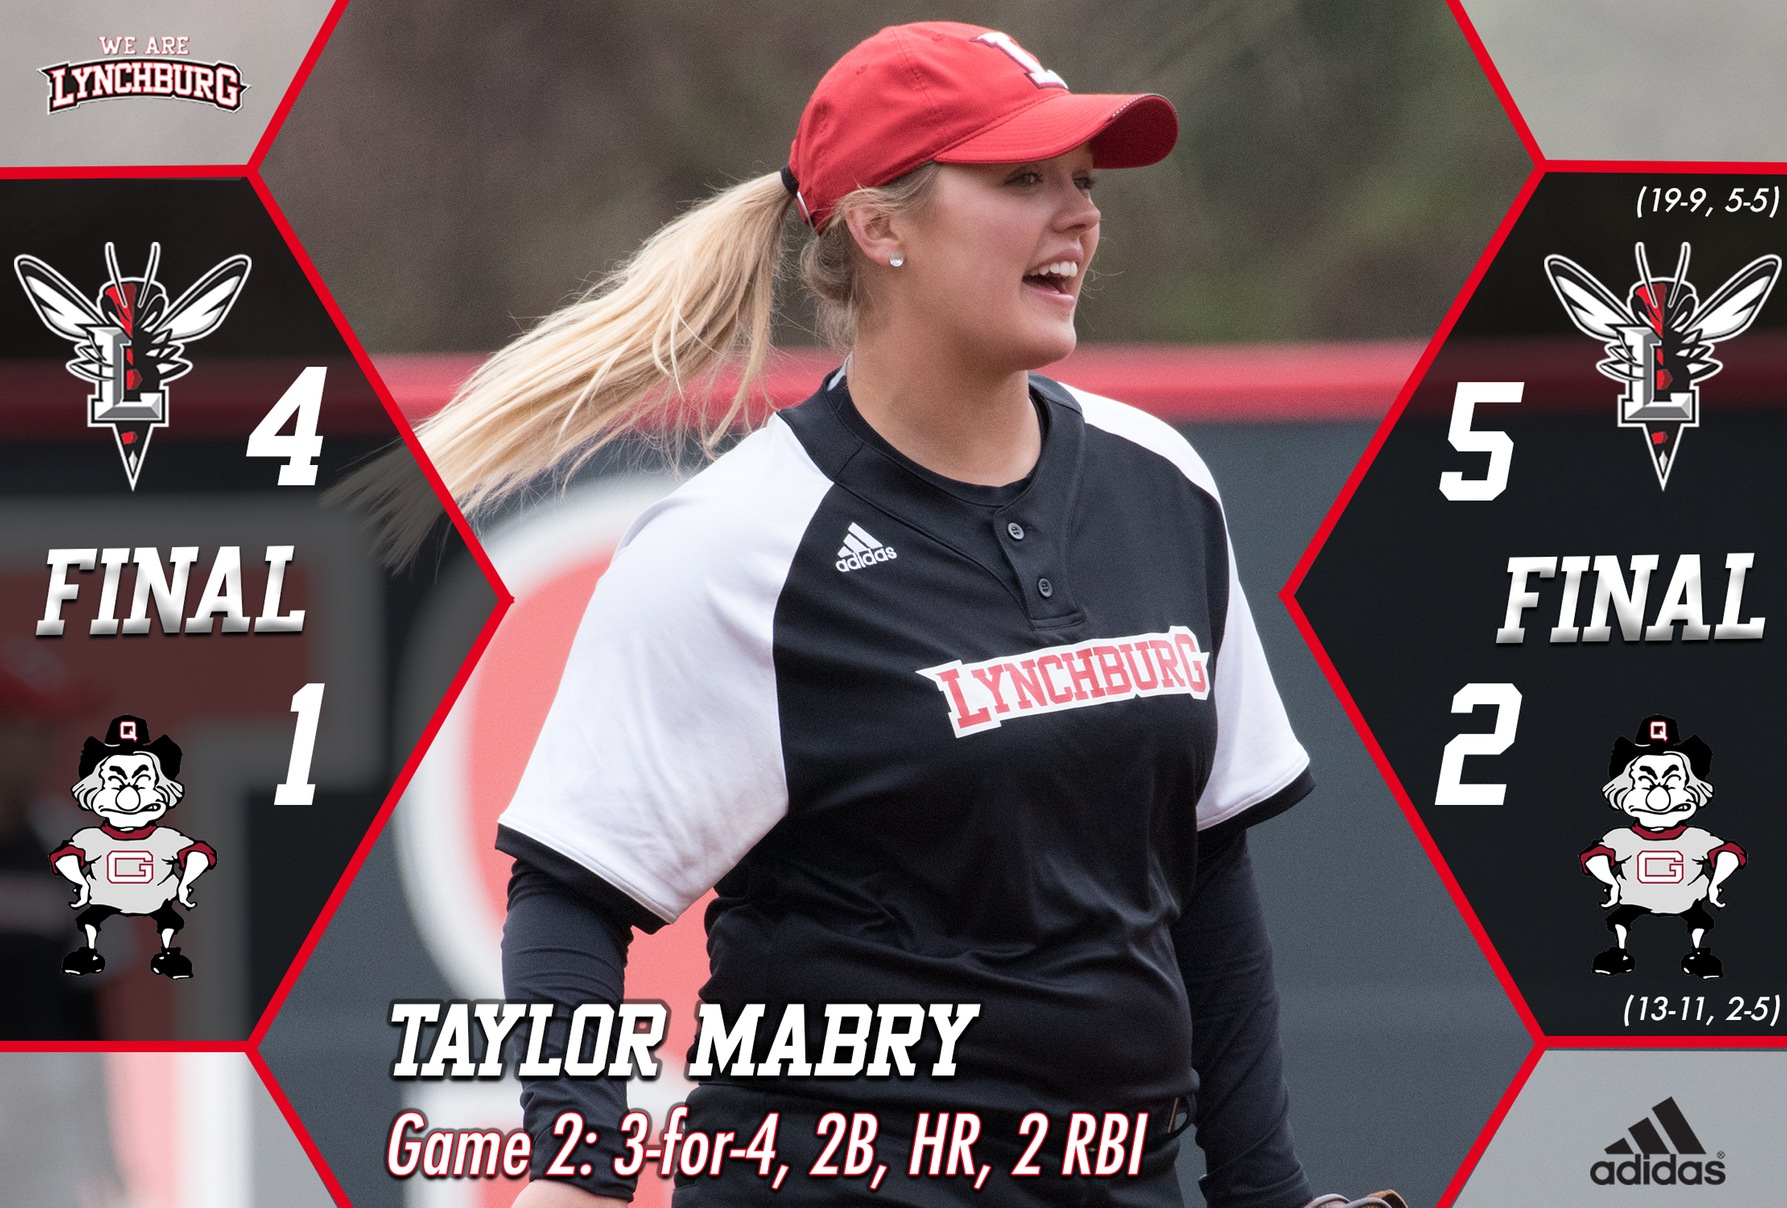 Taylor Mabry smiles, celebrating success on the field.